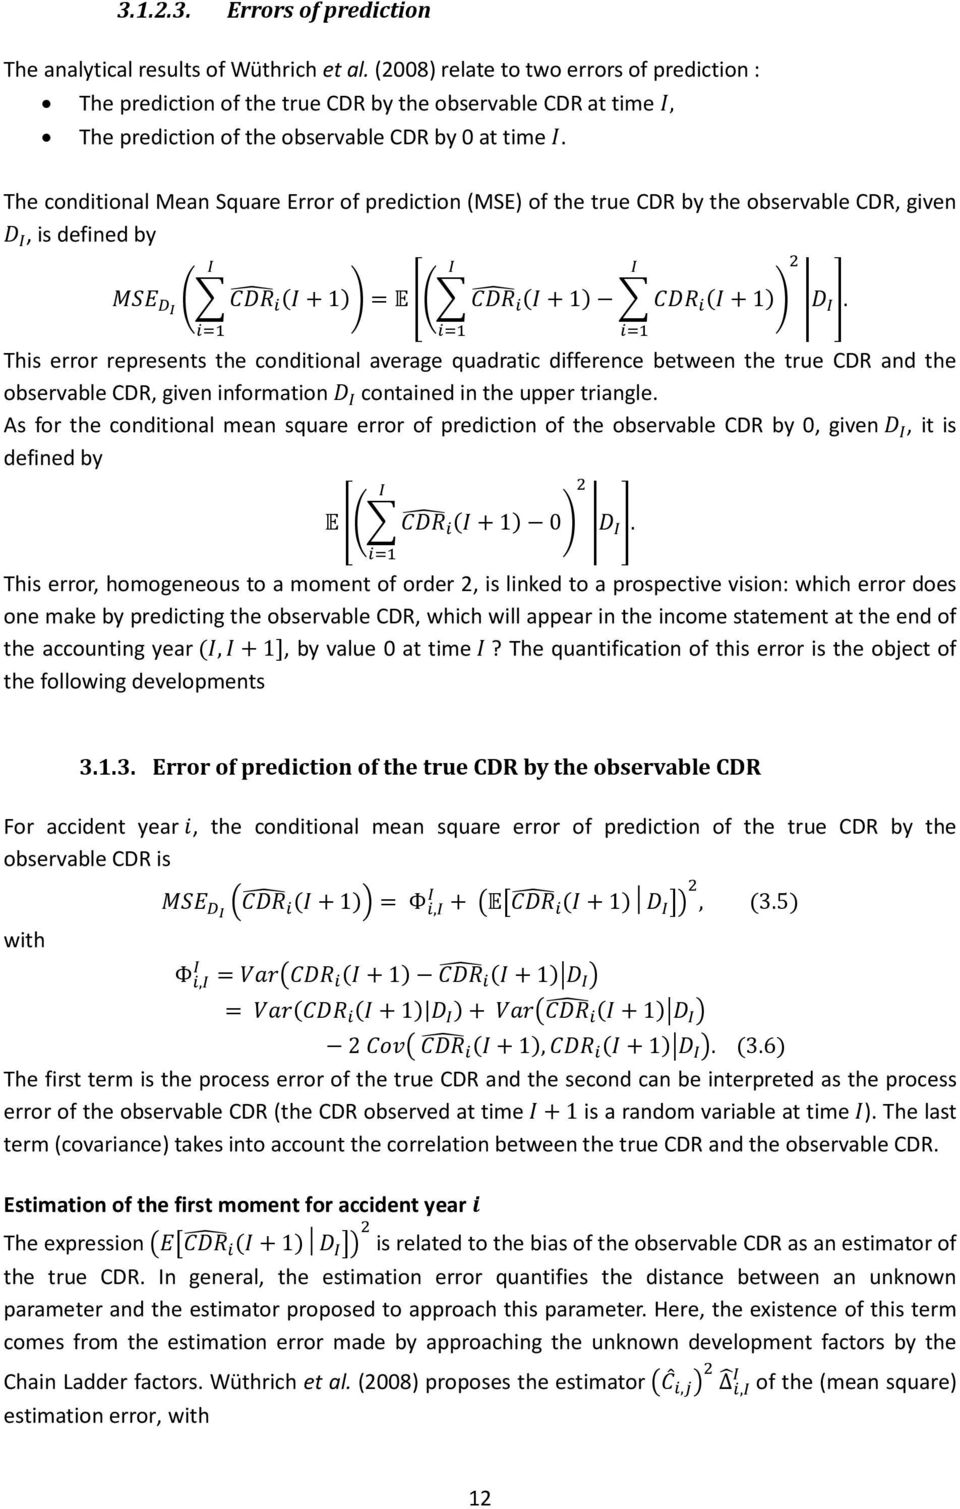 The conditional Mean Square Error of prediction (MSE) of the true CDR by the observable CDR, given, is defined by + 1 = + 1 + 1 This error represents the conditional average quadratic difference